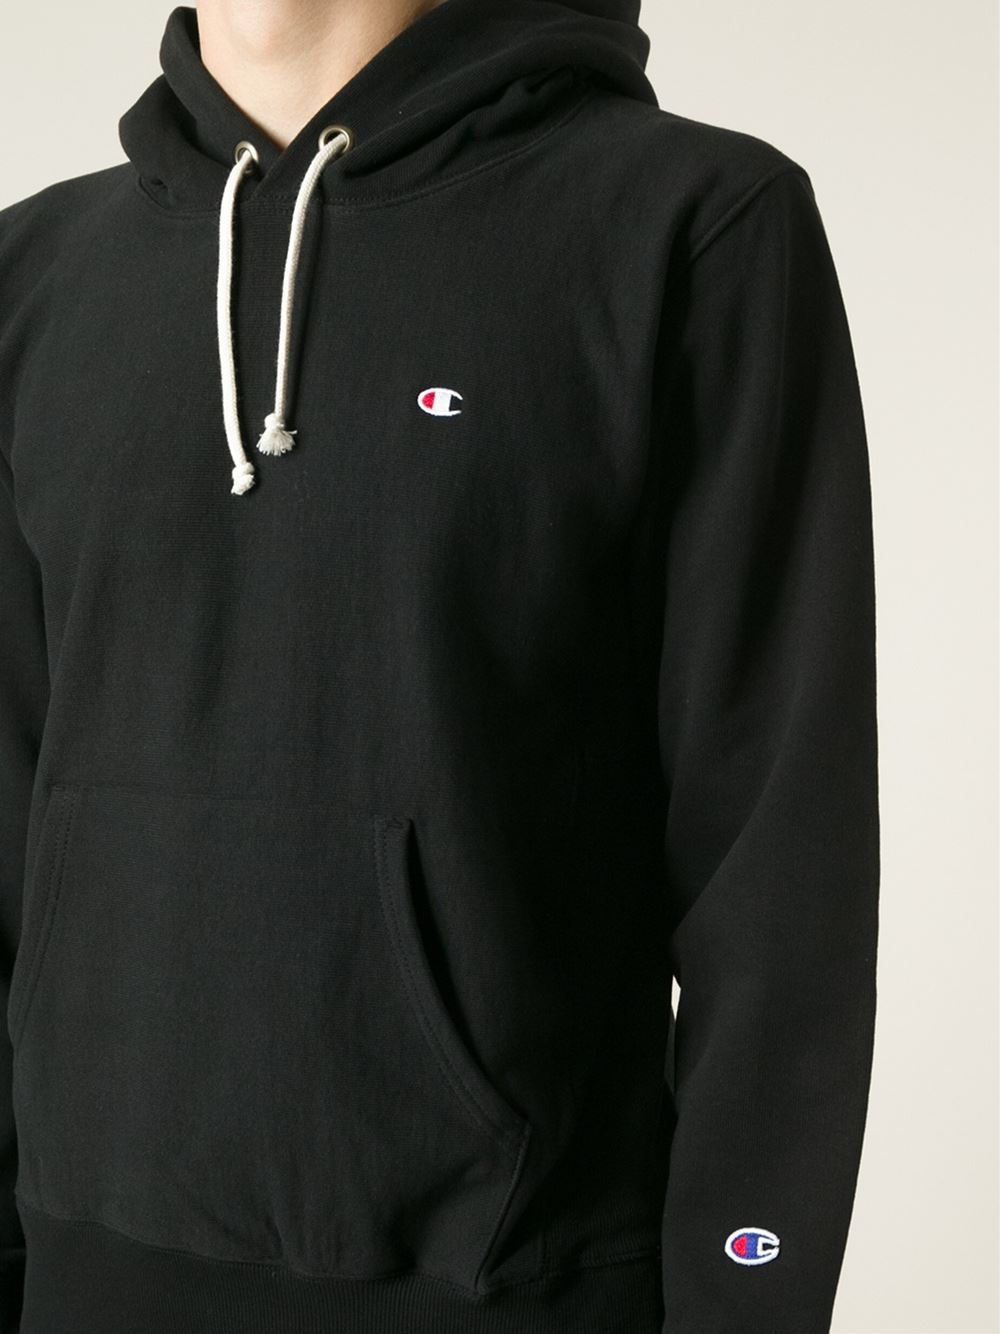 08be4fbbdb23 Black Champion Hoodie Outfits